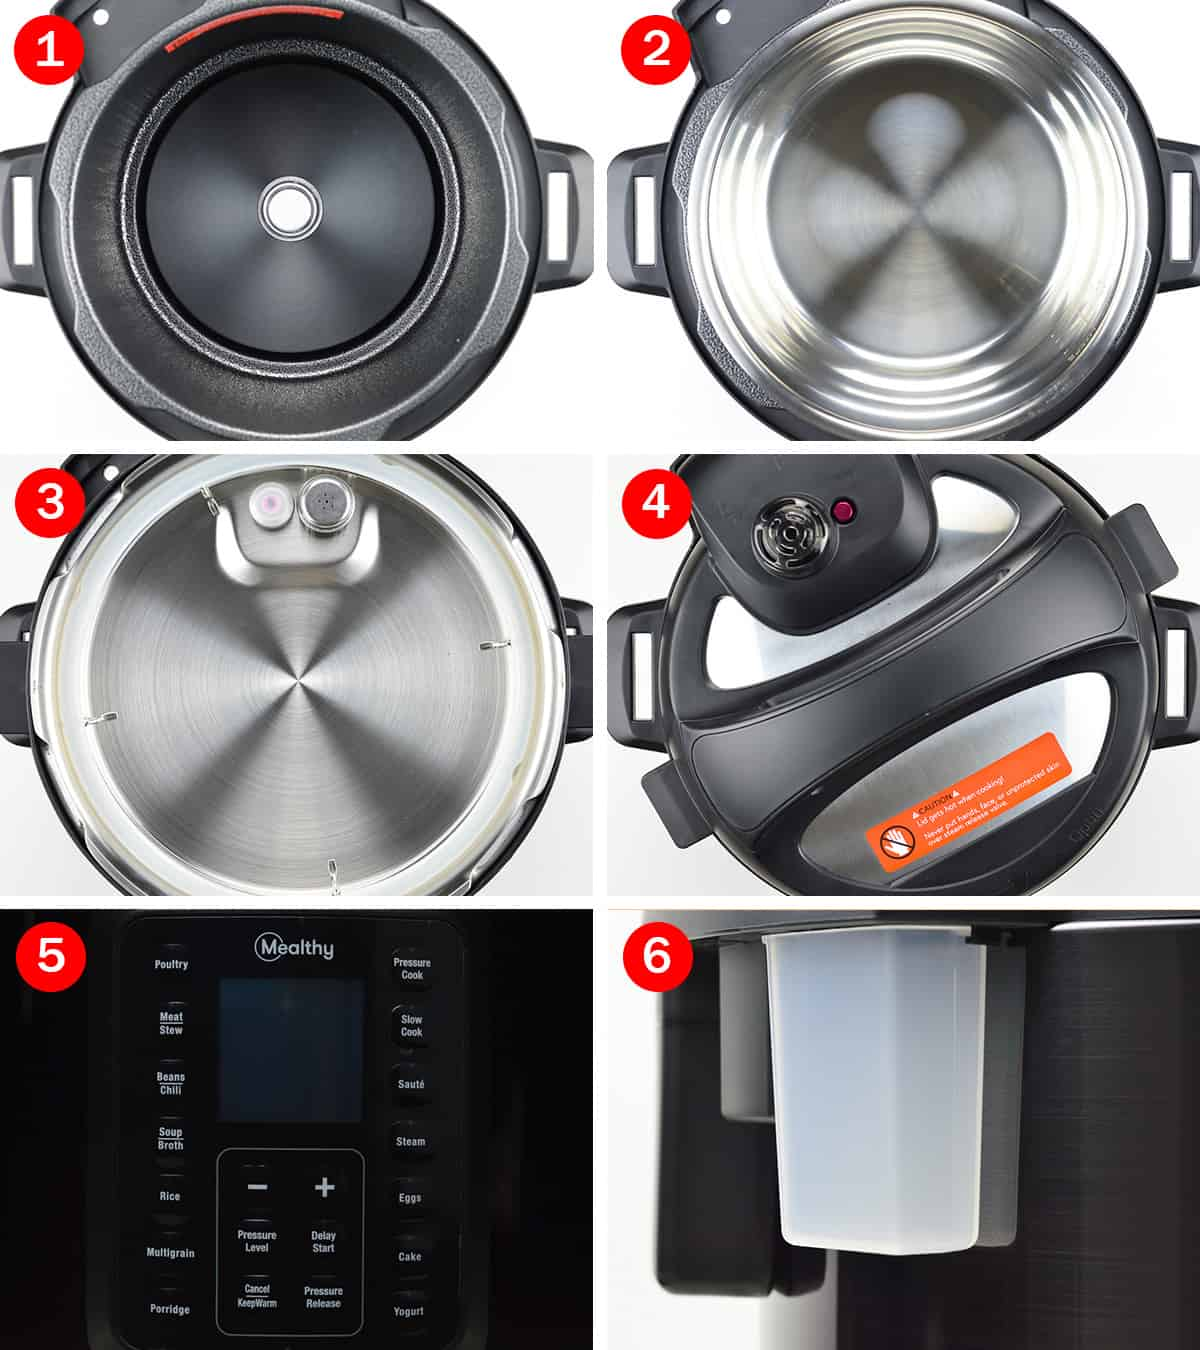 collage of the different parts and components of the mealthy multipot base unit - exterior pot, inner pot, inner and outer part of the lid, the display panel, and the condensation collector